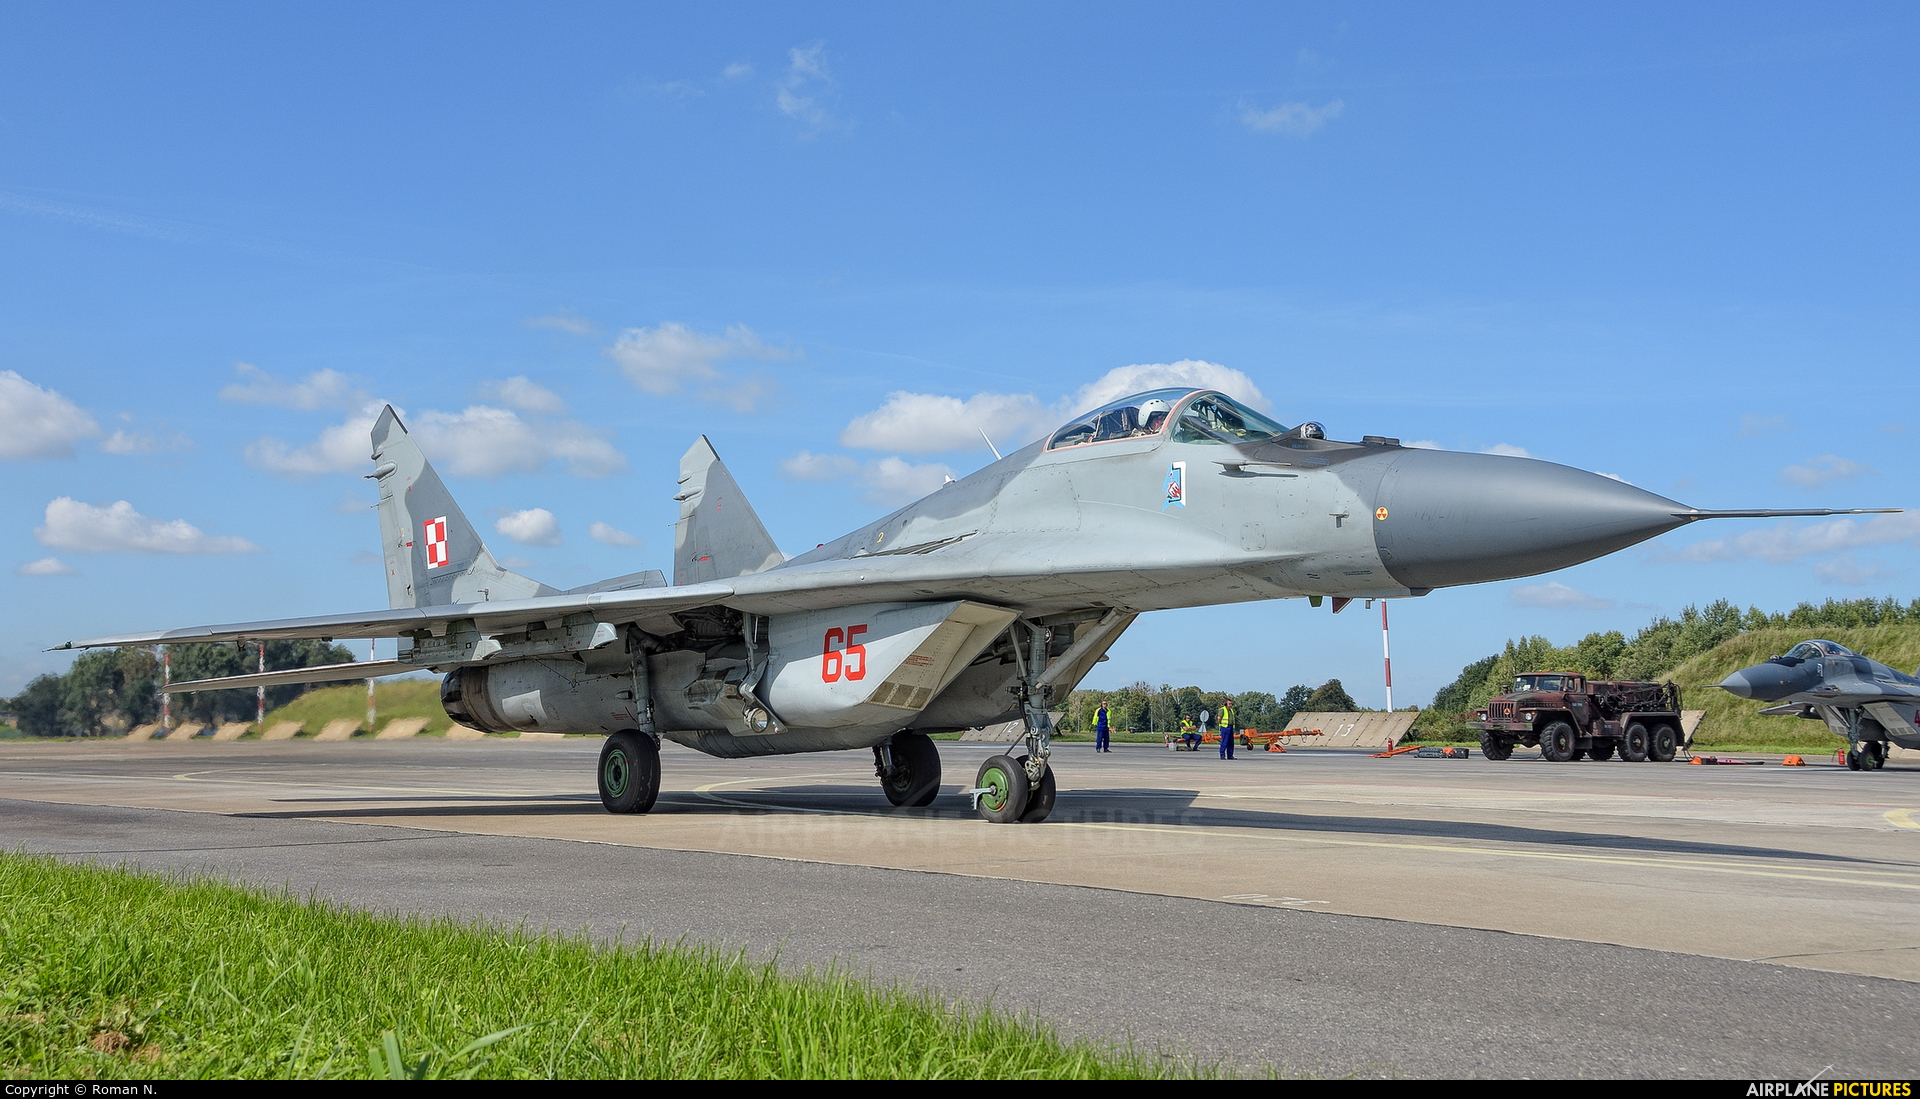 Poland - Air Force 65 aircraft at Malbork